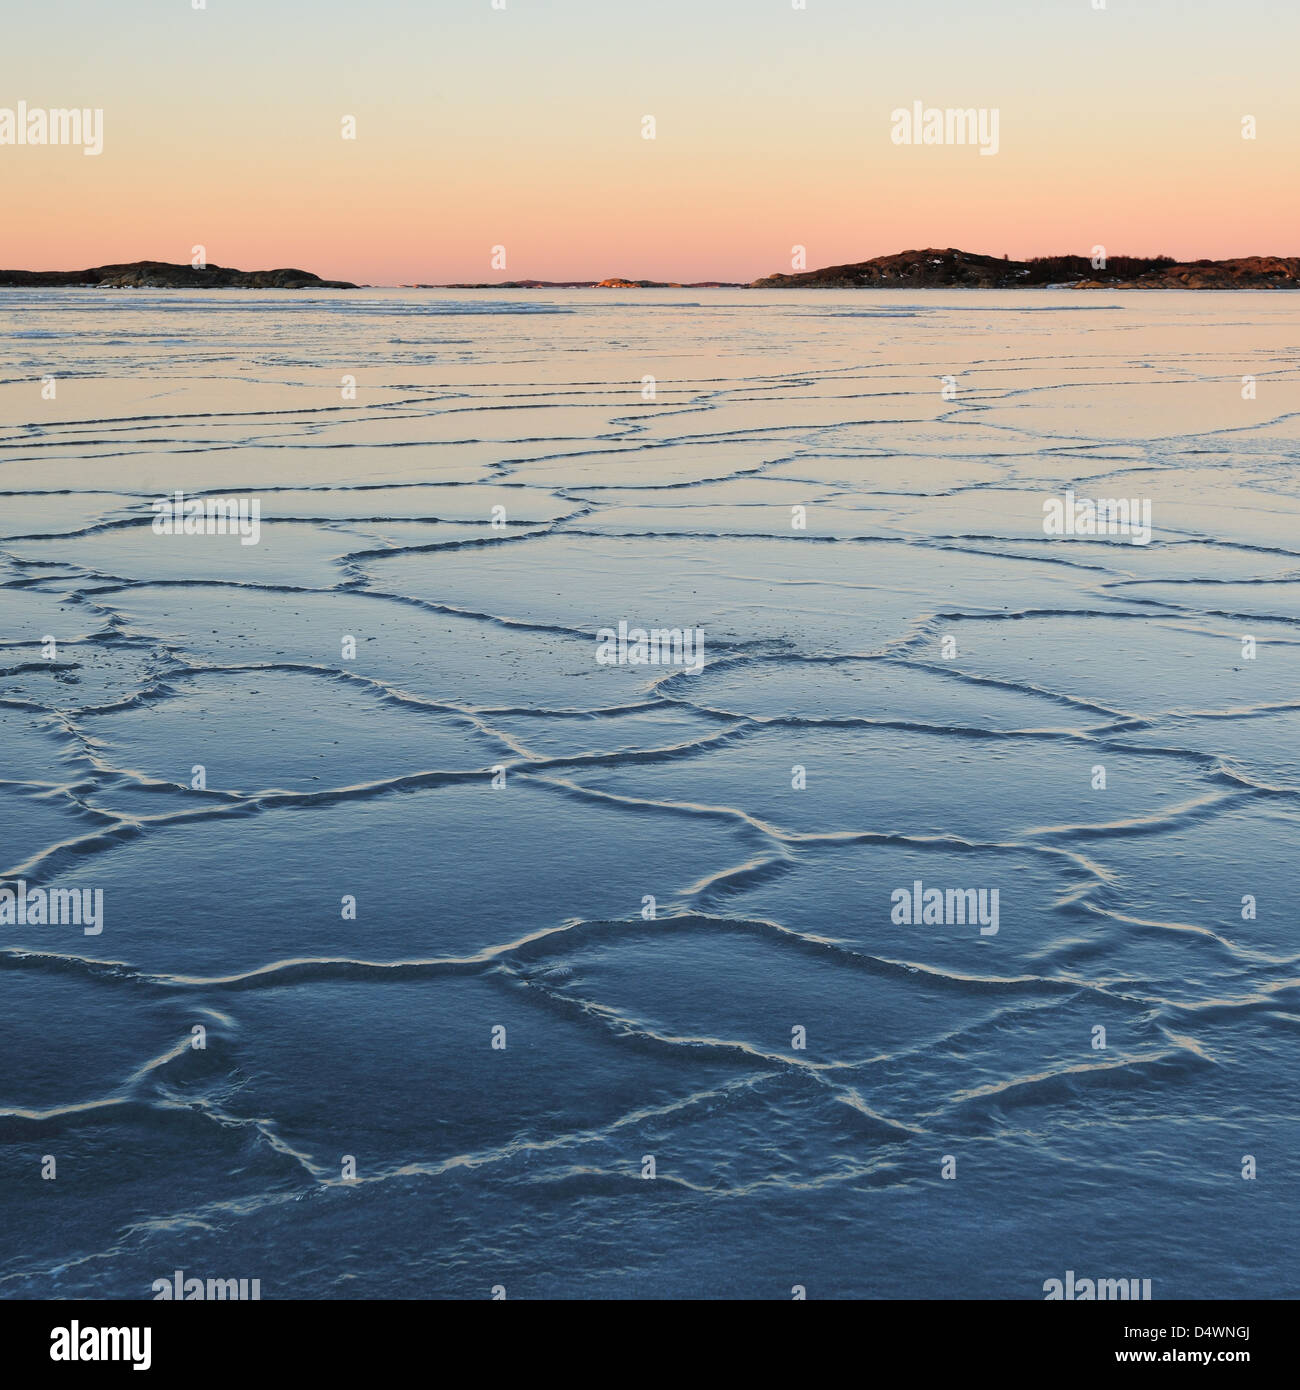 Frozen sea at Smithska Udden, Gotenburg, Sweden, Europe - Stock Image